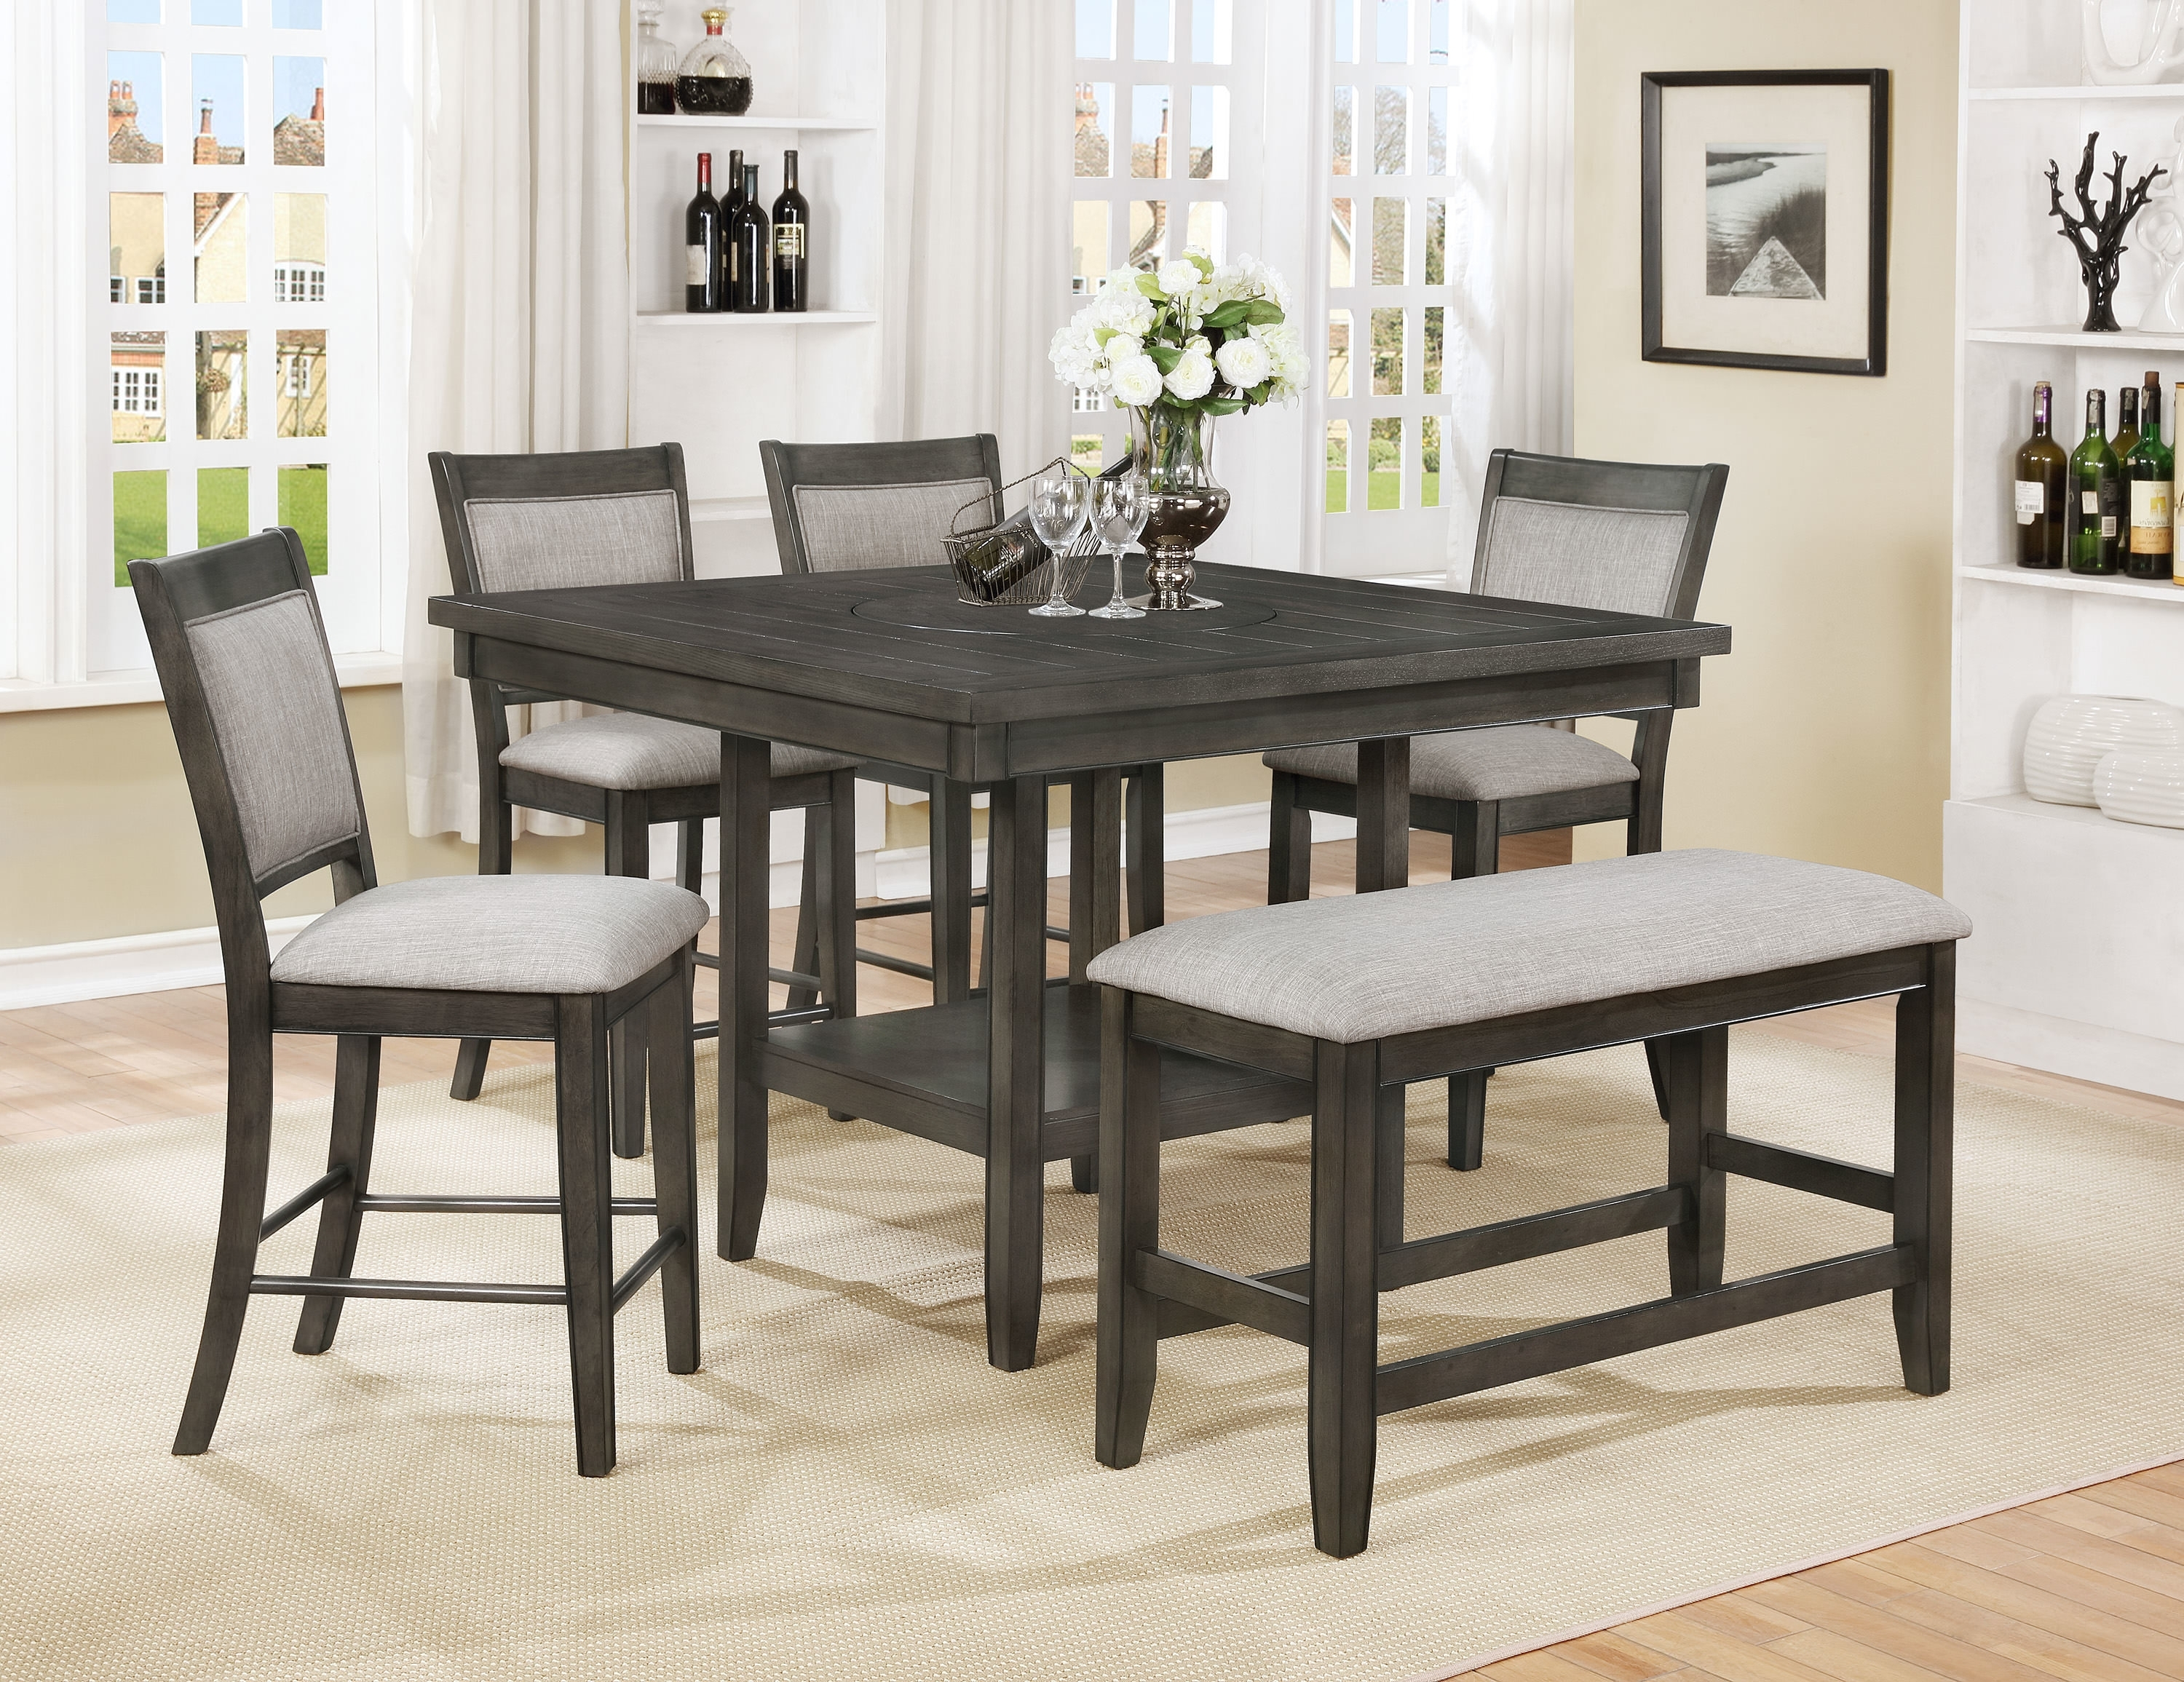 Gracie Oaks Addie 6 Piece Counter Height Dining Set | Wayfair For Most Recently Released Parquet 7 Piece Dining Sets (View 14 of 20)